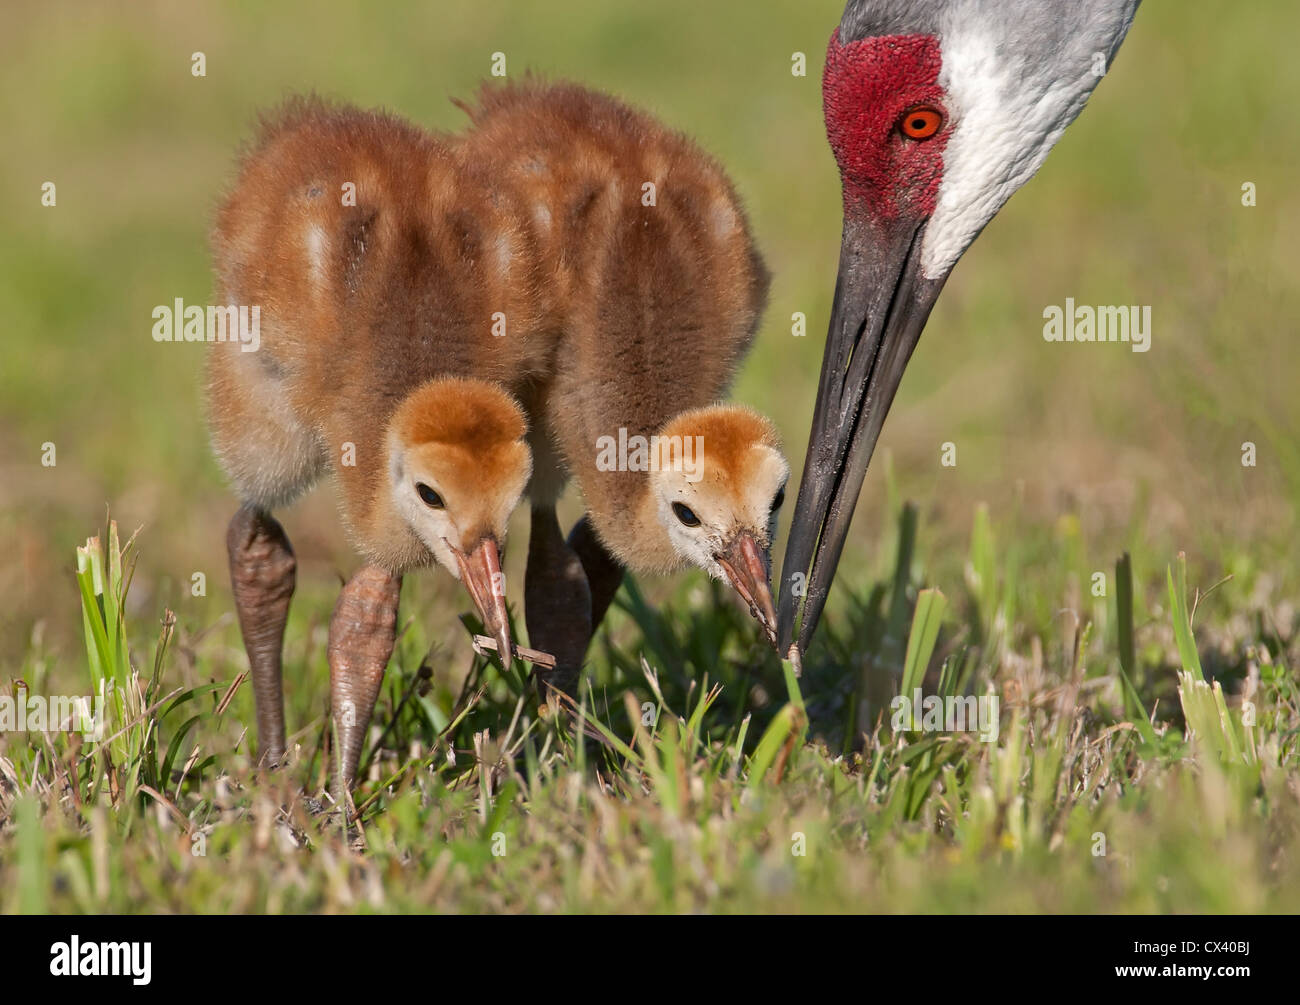 adult sandhill crane feeding it's young - Stock Image